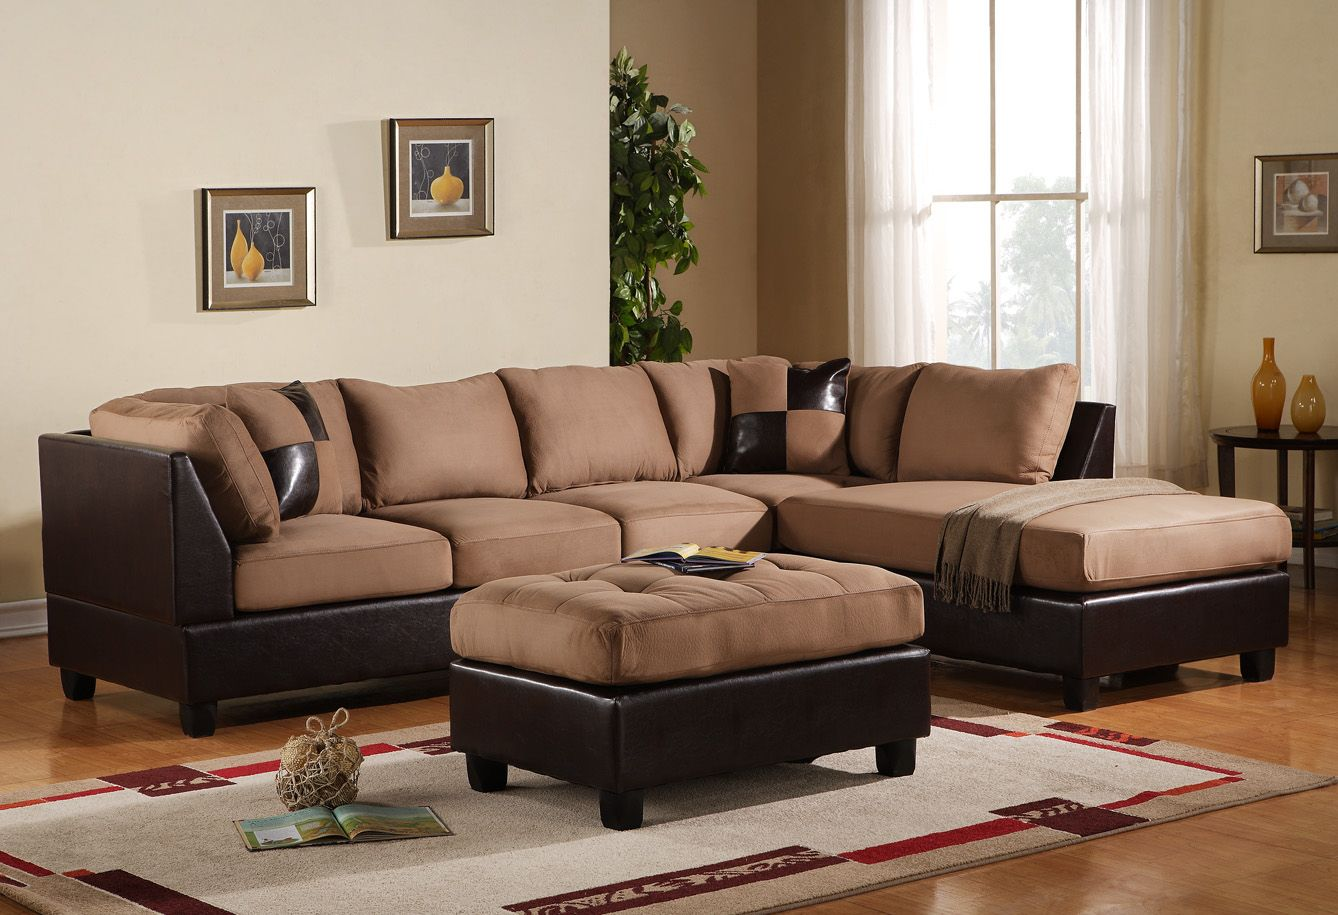 Nice Rooms To Go Sectional Sofa Trend 64 With Additional Modern Inspiration